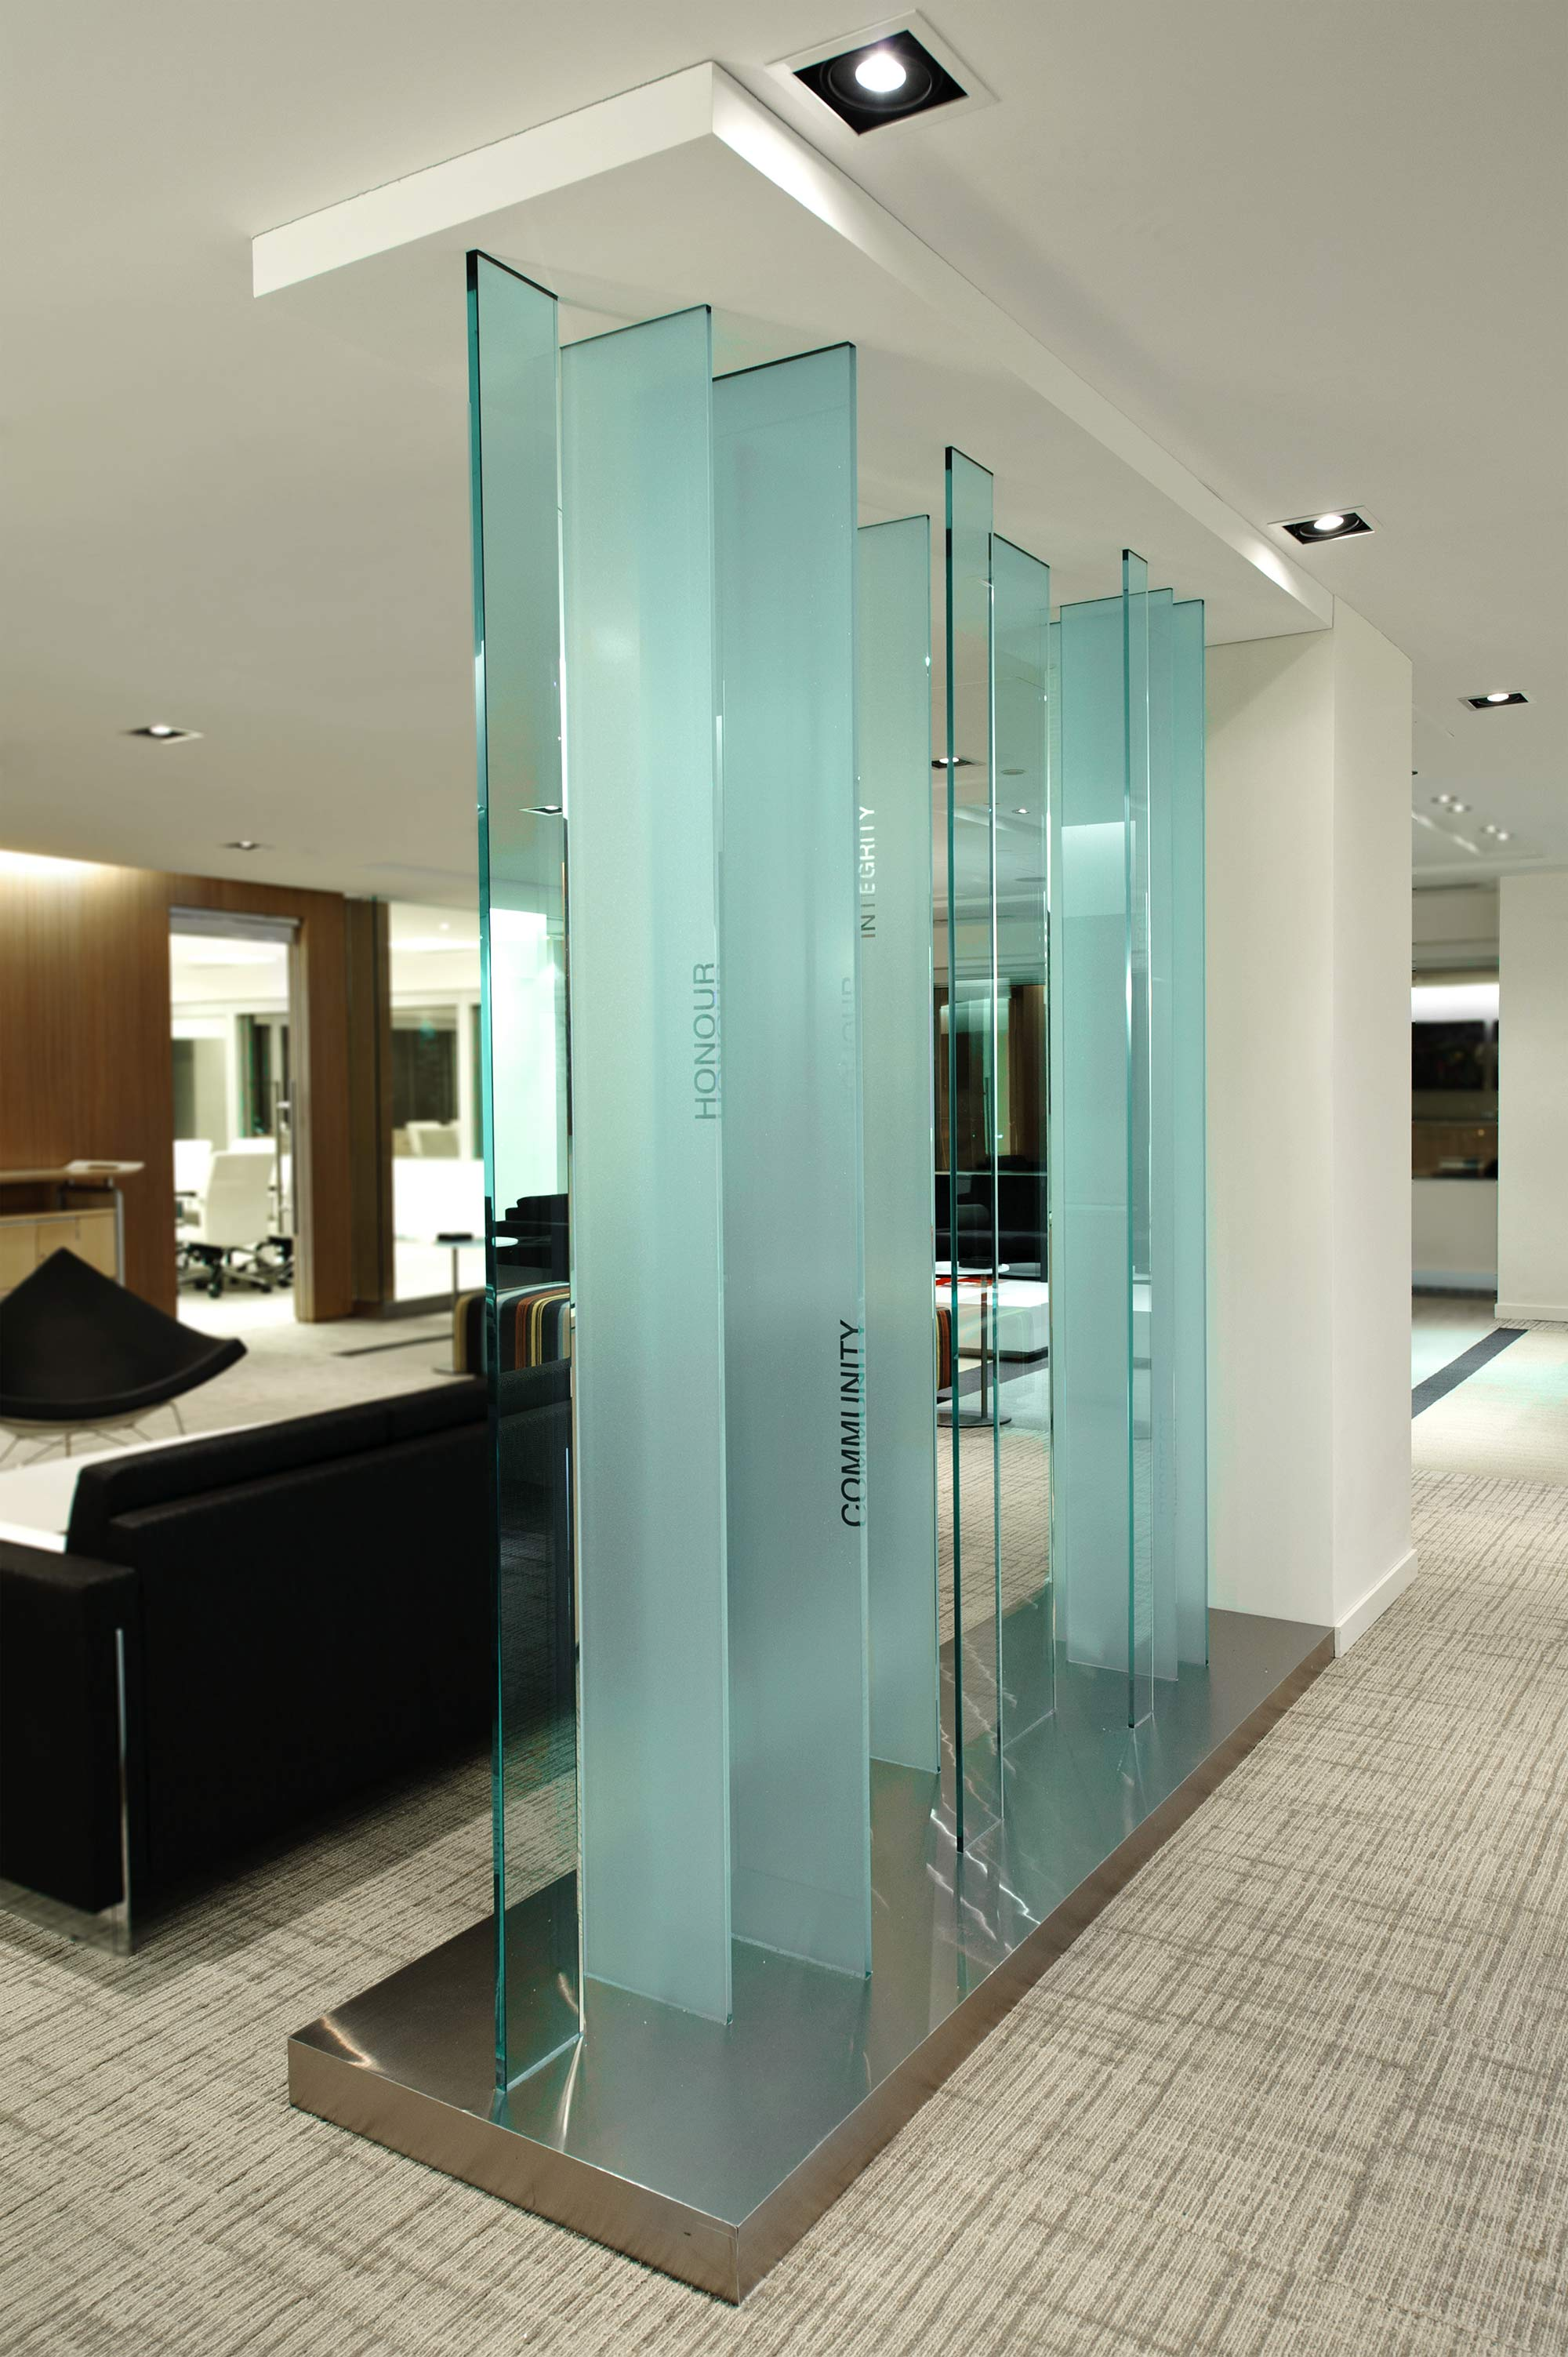 interior-design-legal-office-glass-detail.jpg